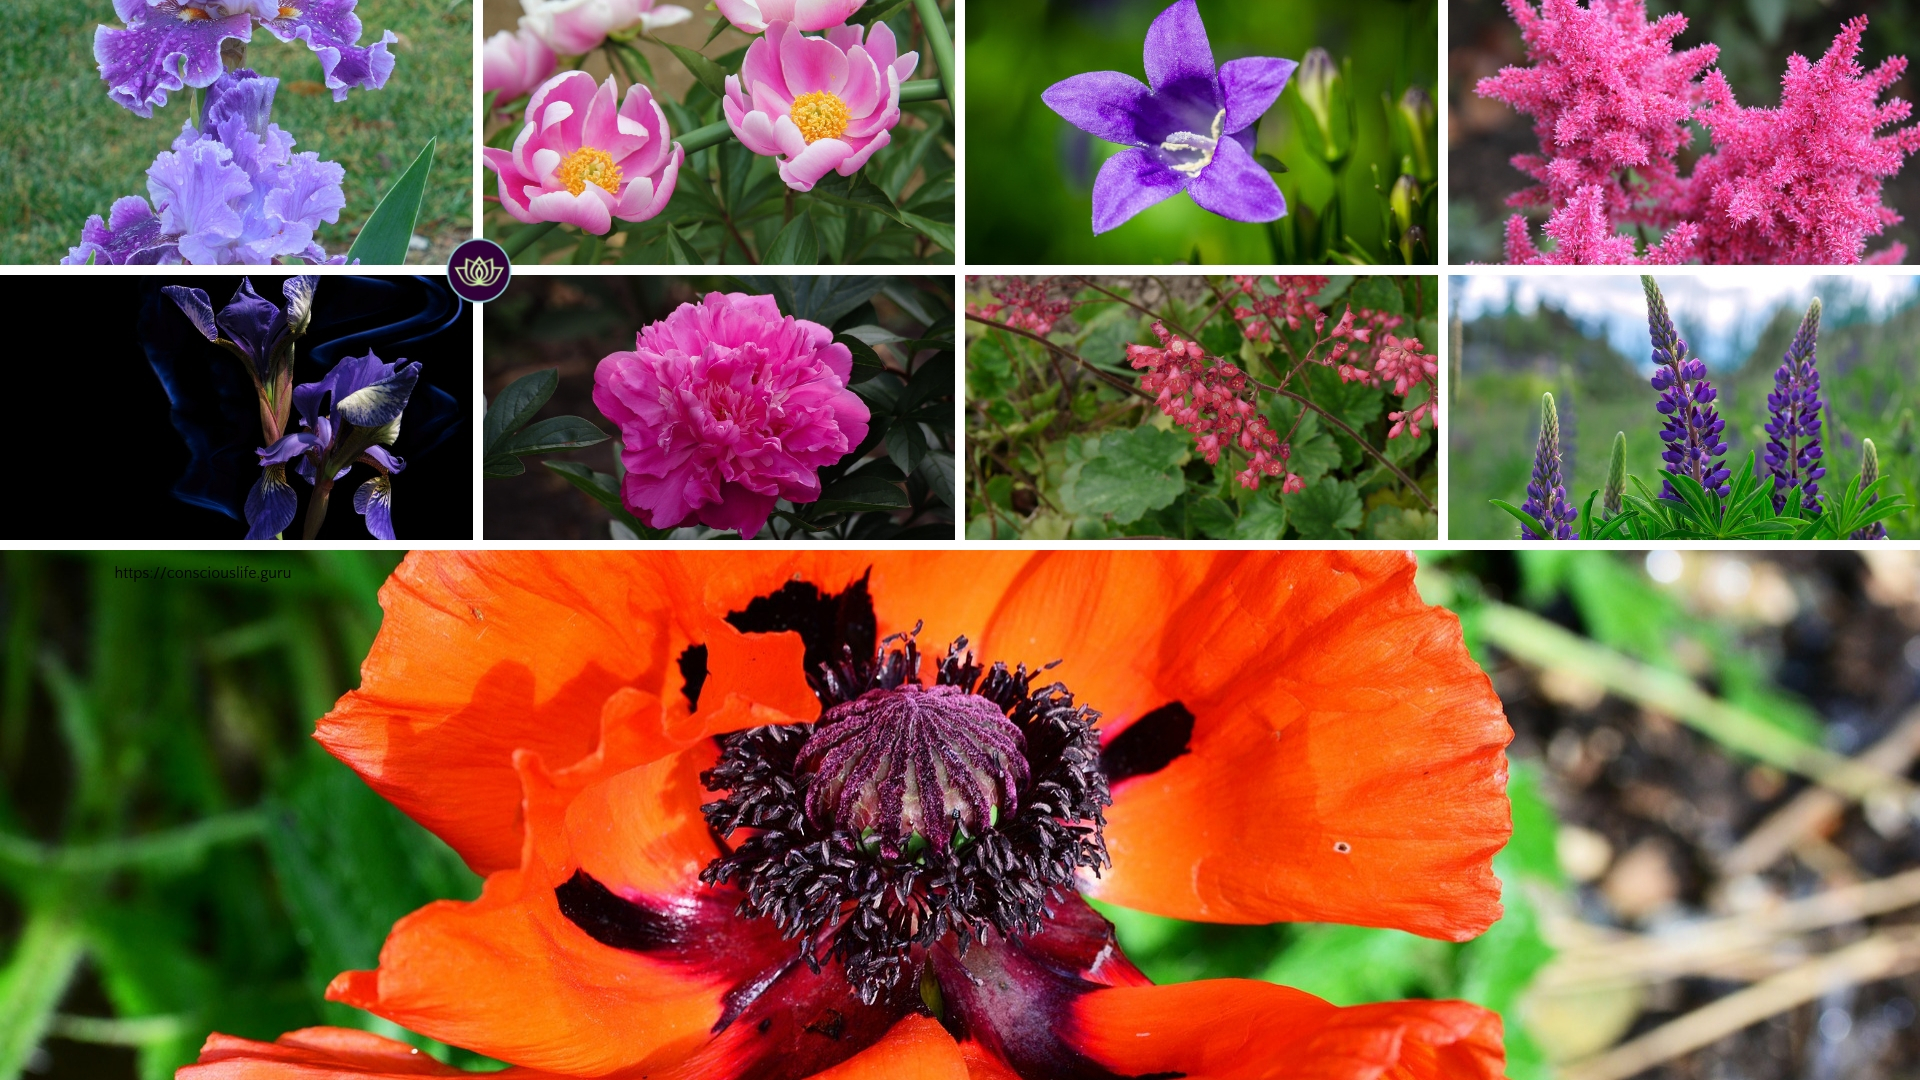 We made a perennial plant guide to mid-spring to late spring blooms for your garden